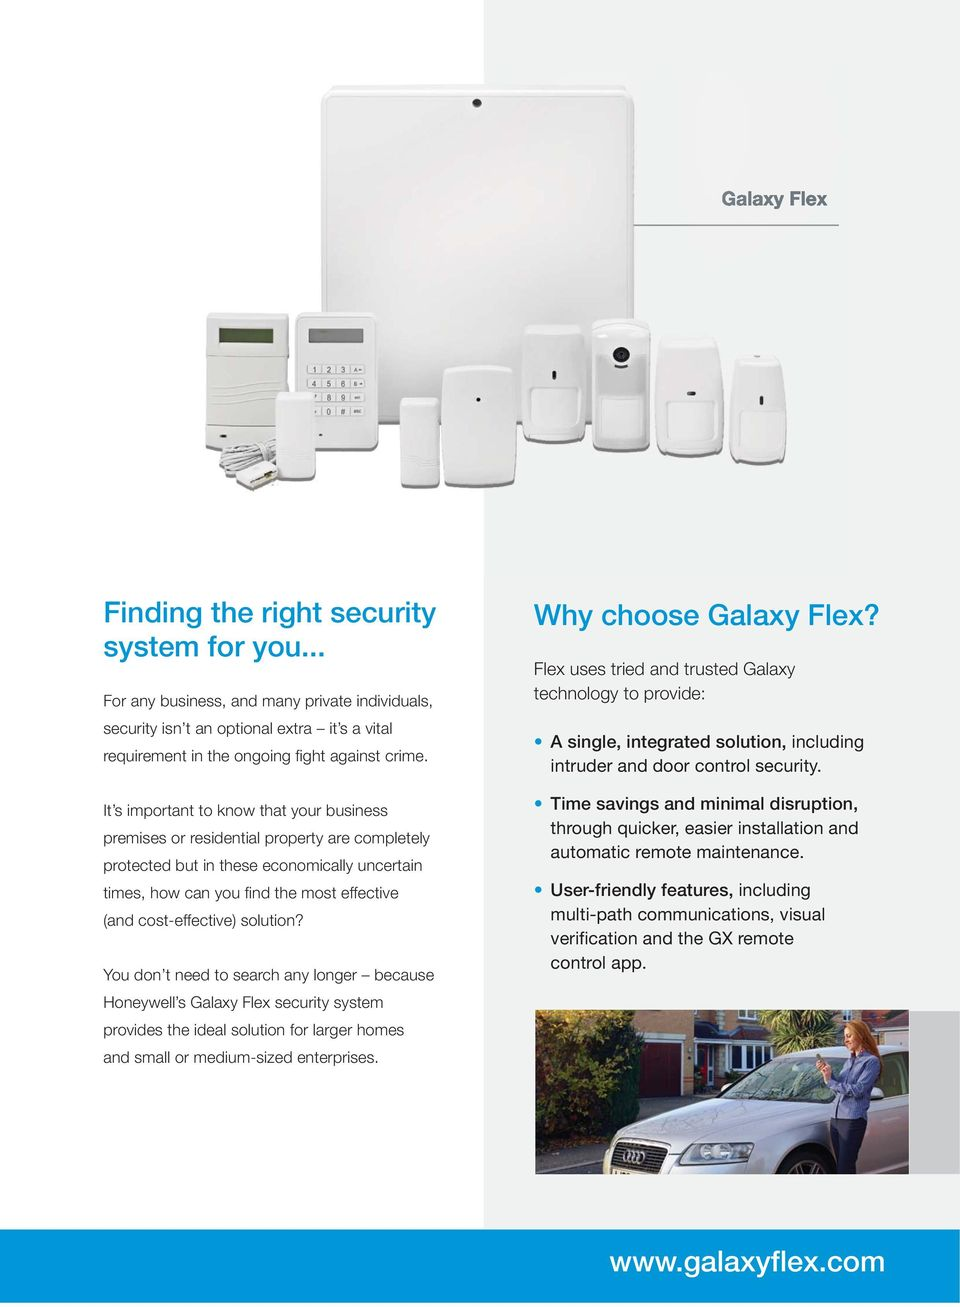 solution? You don t need to search any longer because Honeywell s Galaxy Flex security system provides the ideal solution for larger homes and small or medium-sized enterprises.